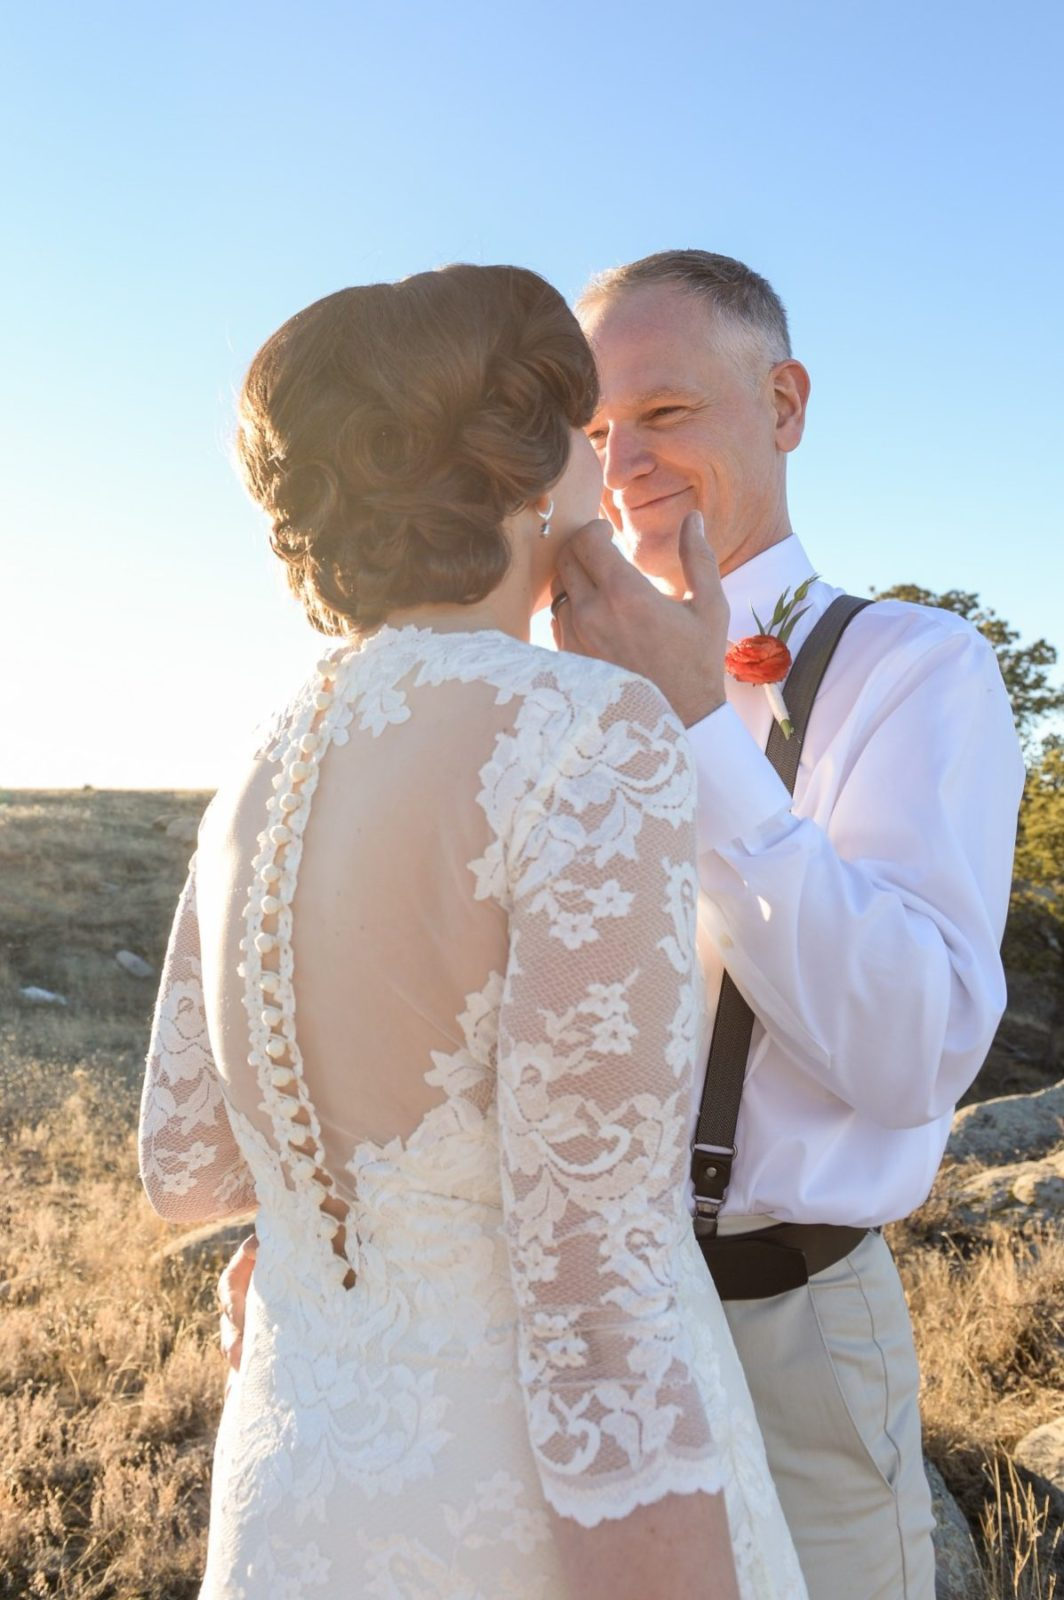 3 Years of Marriage + 2 Sweethearts + 1 Rustic Ranch = The Colorado Dream Team